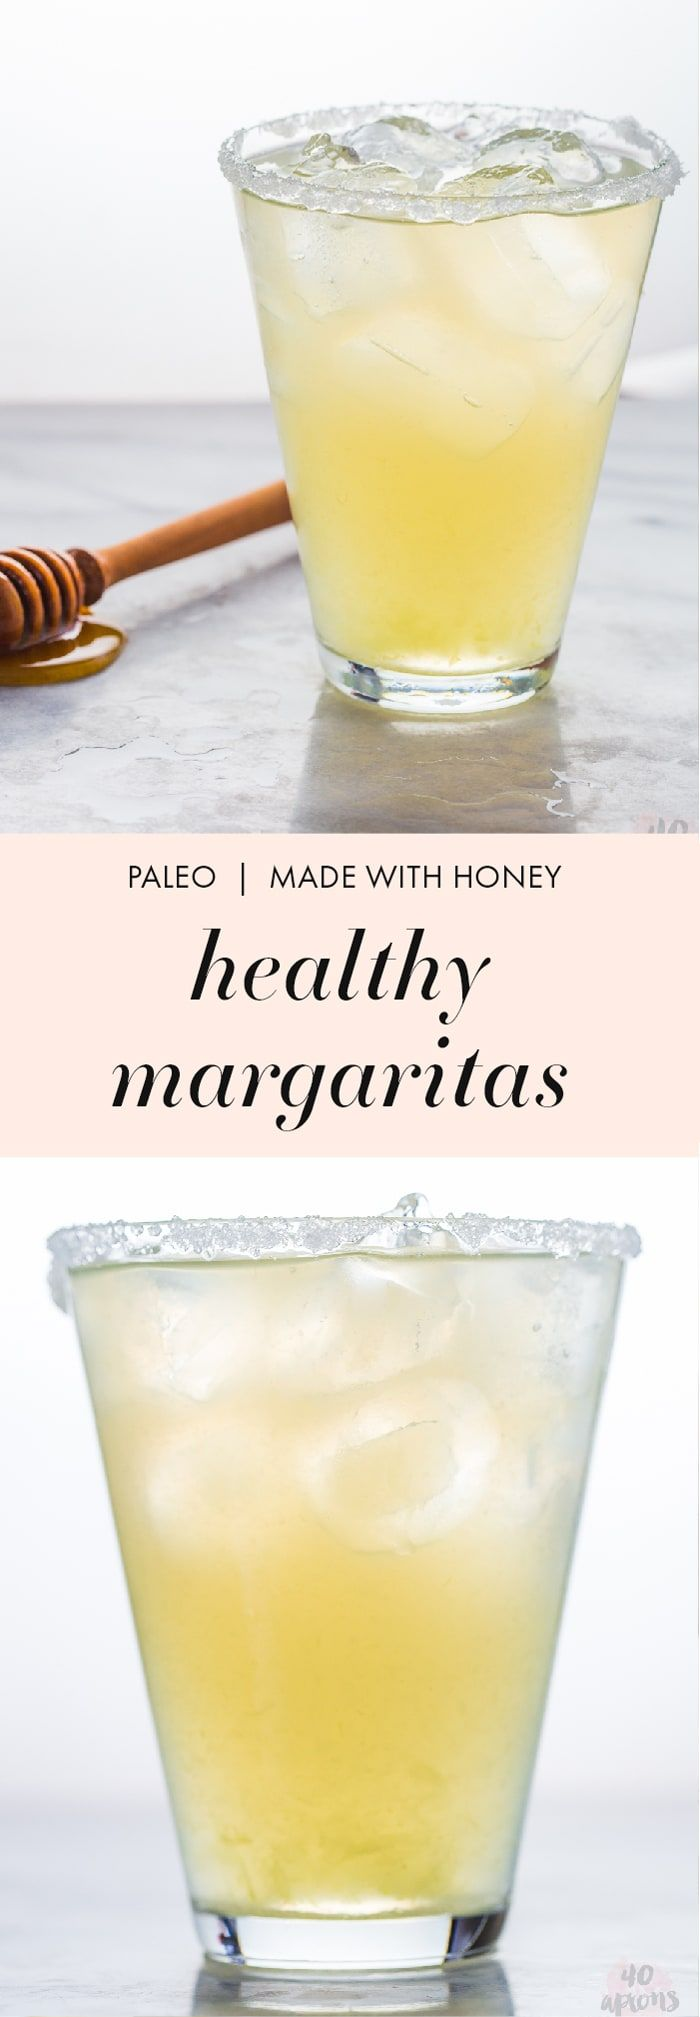 These paleo healthy margaritas are made with simple ingredients: lime juice, honey, water, and booze. Sugar free and paleo (I mean... tequila is pretty much paleo, right?), they're the closest thing to healthy margaritas that exist! Ideal for Cinco de Mayo or any fiesta occasion (slash random weekday), you'll fall in love with how super quick and easy these healthy margaritas are, too.